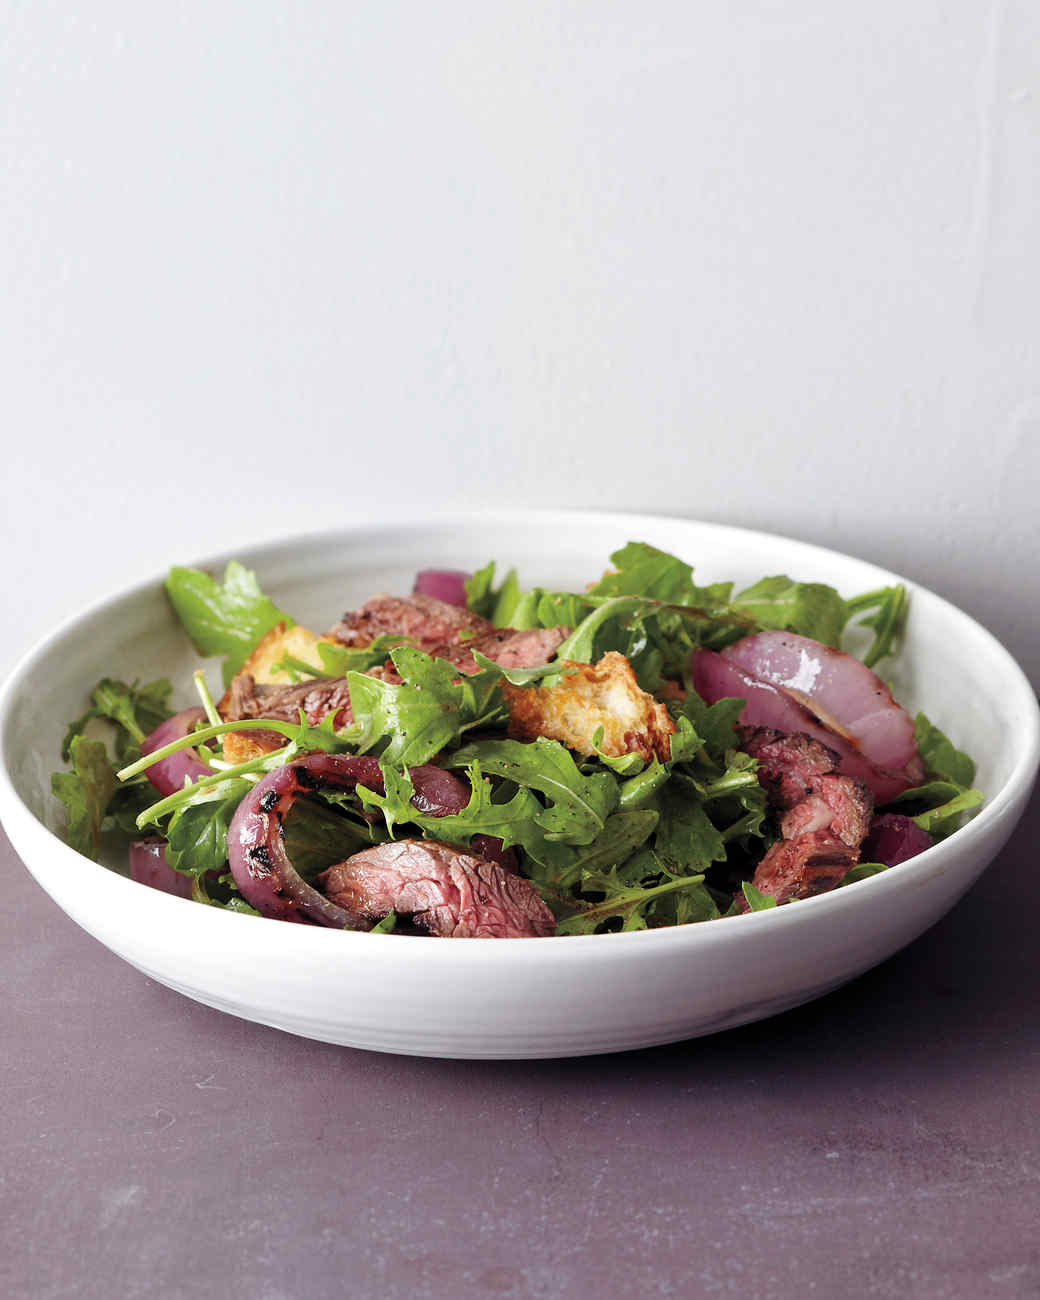 med106560_0311_salad_steak.jpg